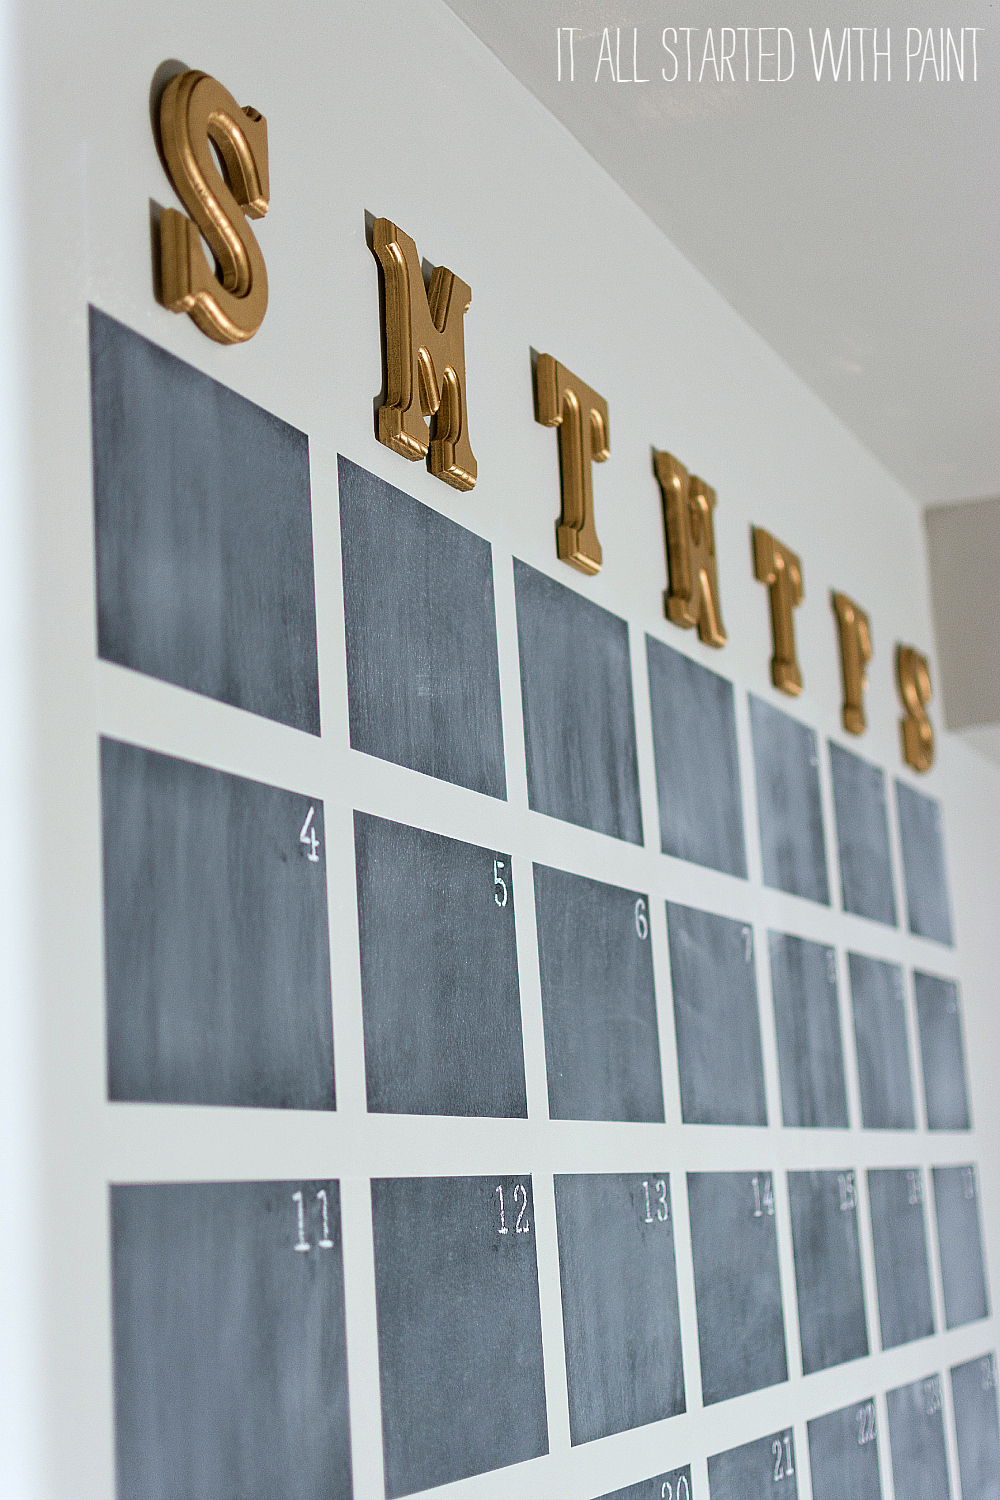 oversized wall calendar with chalkboard paint